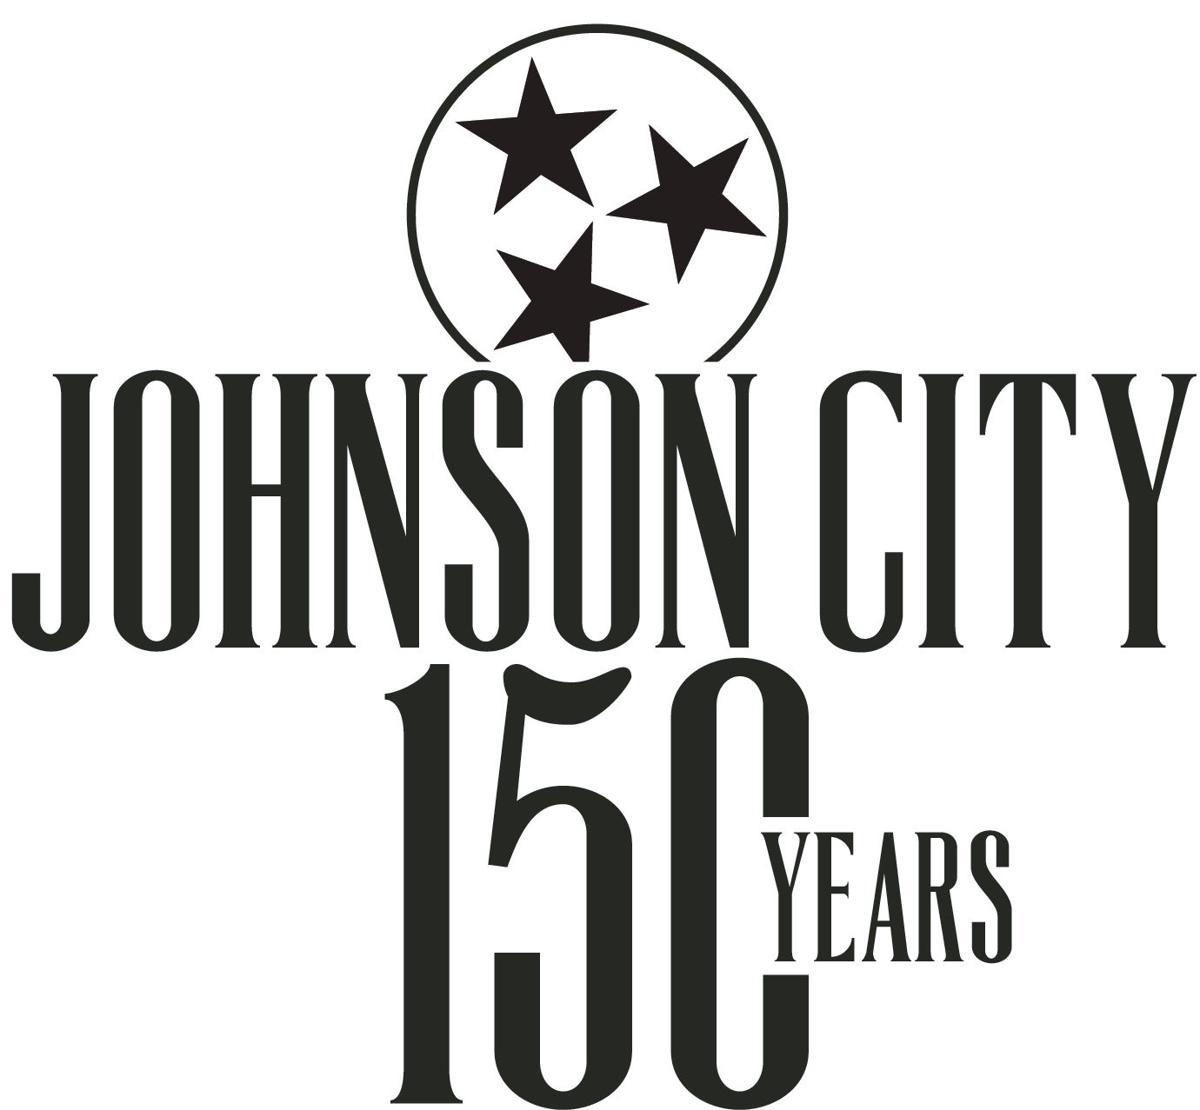 Today in Johnson City History: January 11